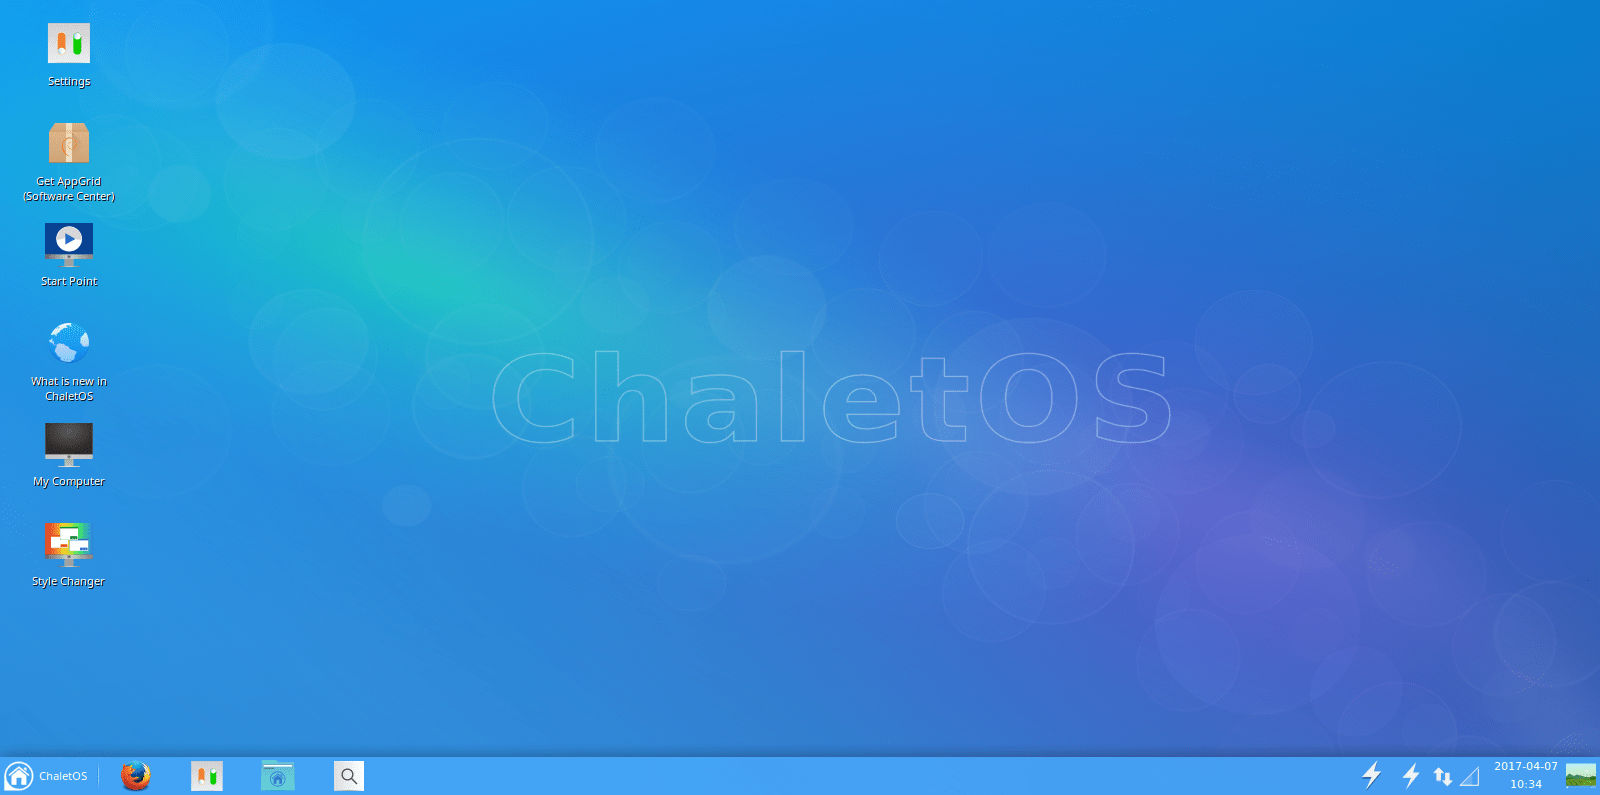 chaletos 16.04.2 desktop.png